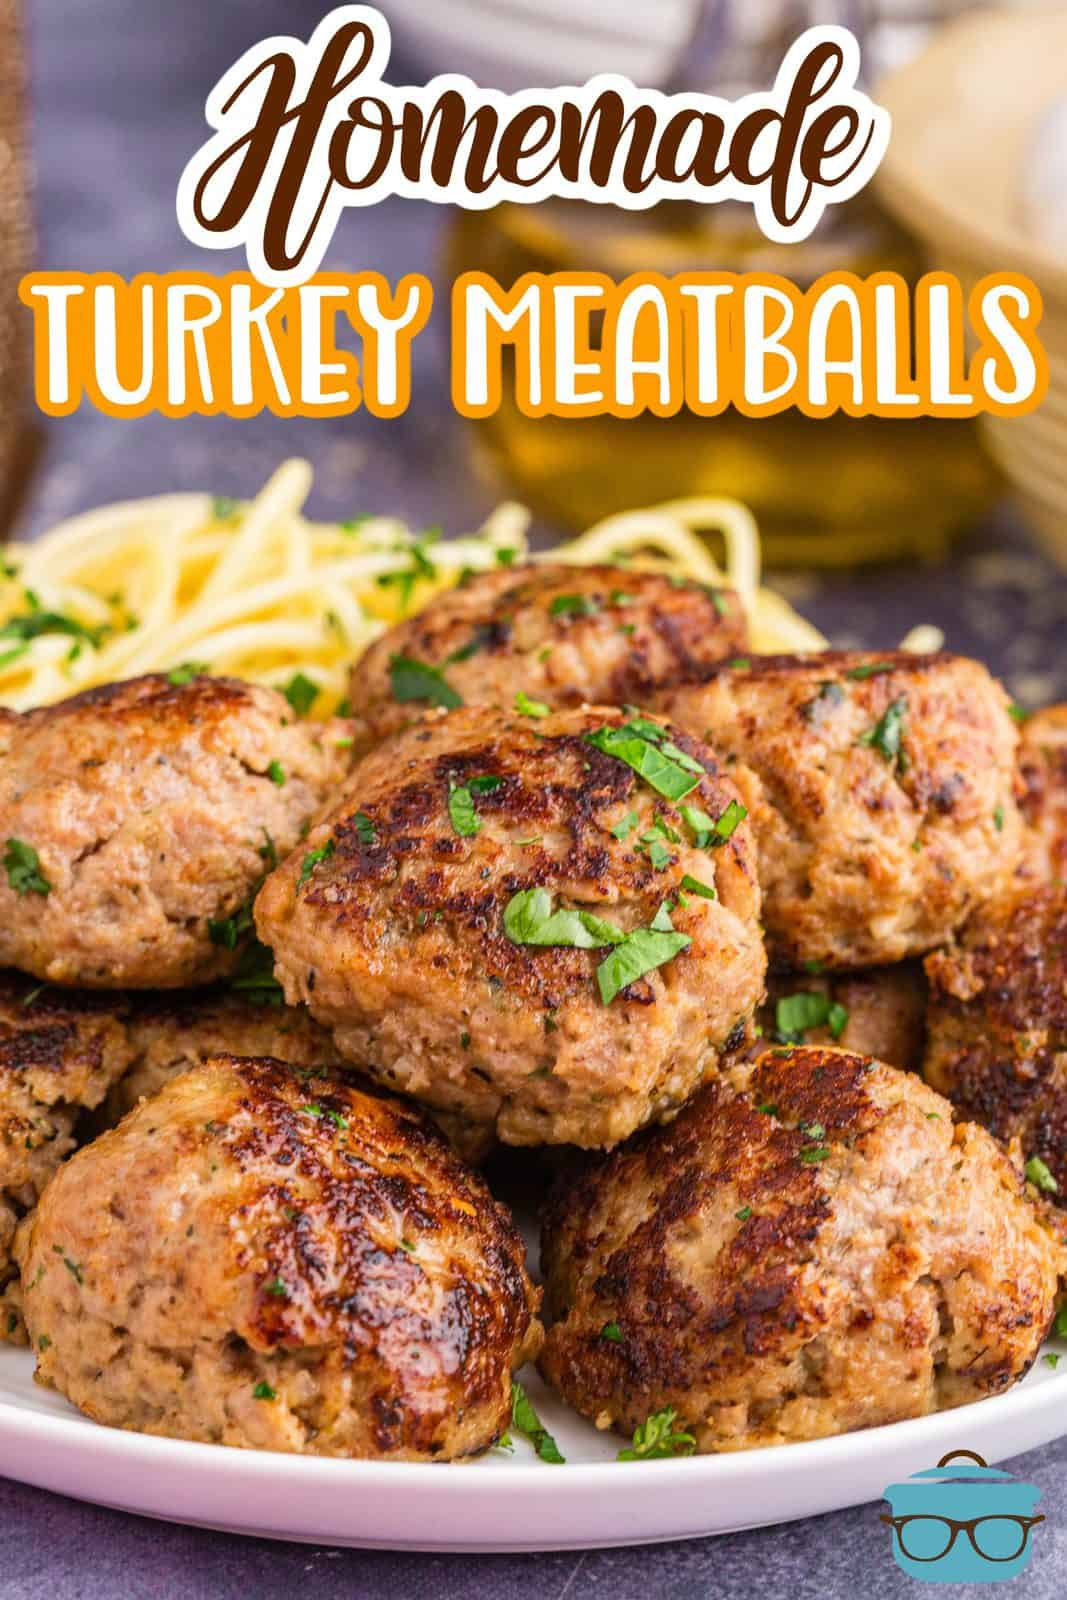 Pinterest image of plated Homemade Turkey Meatballs garnished with parsley.